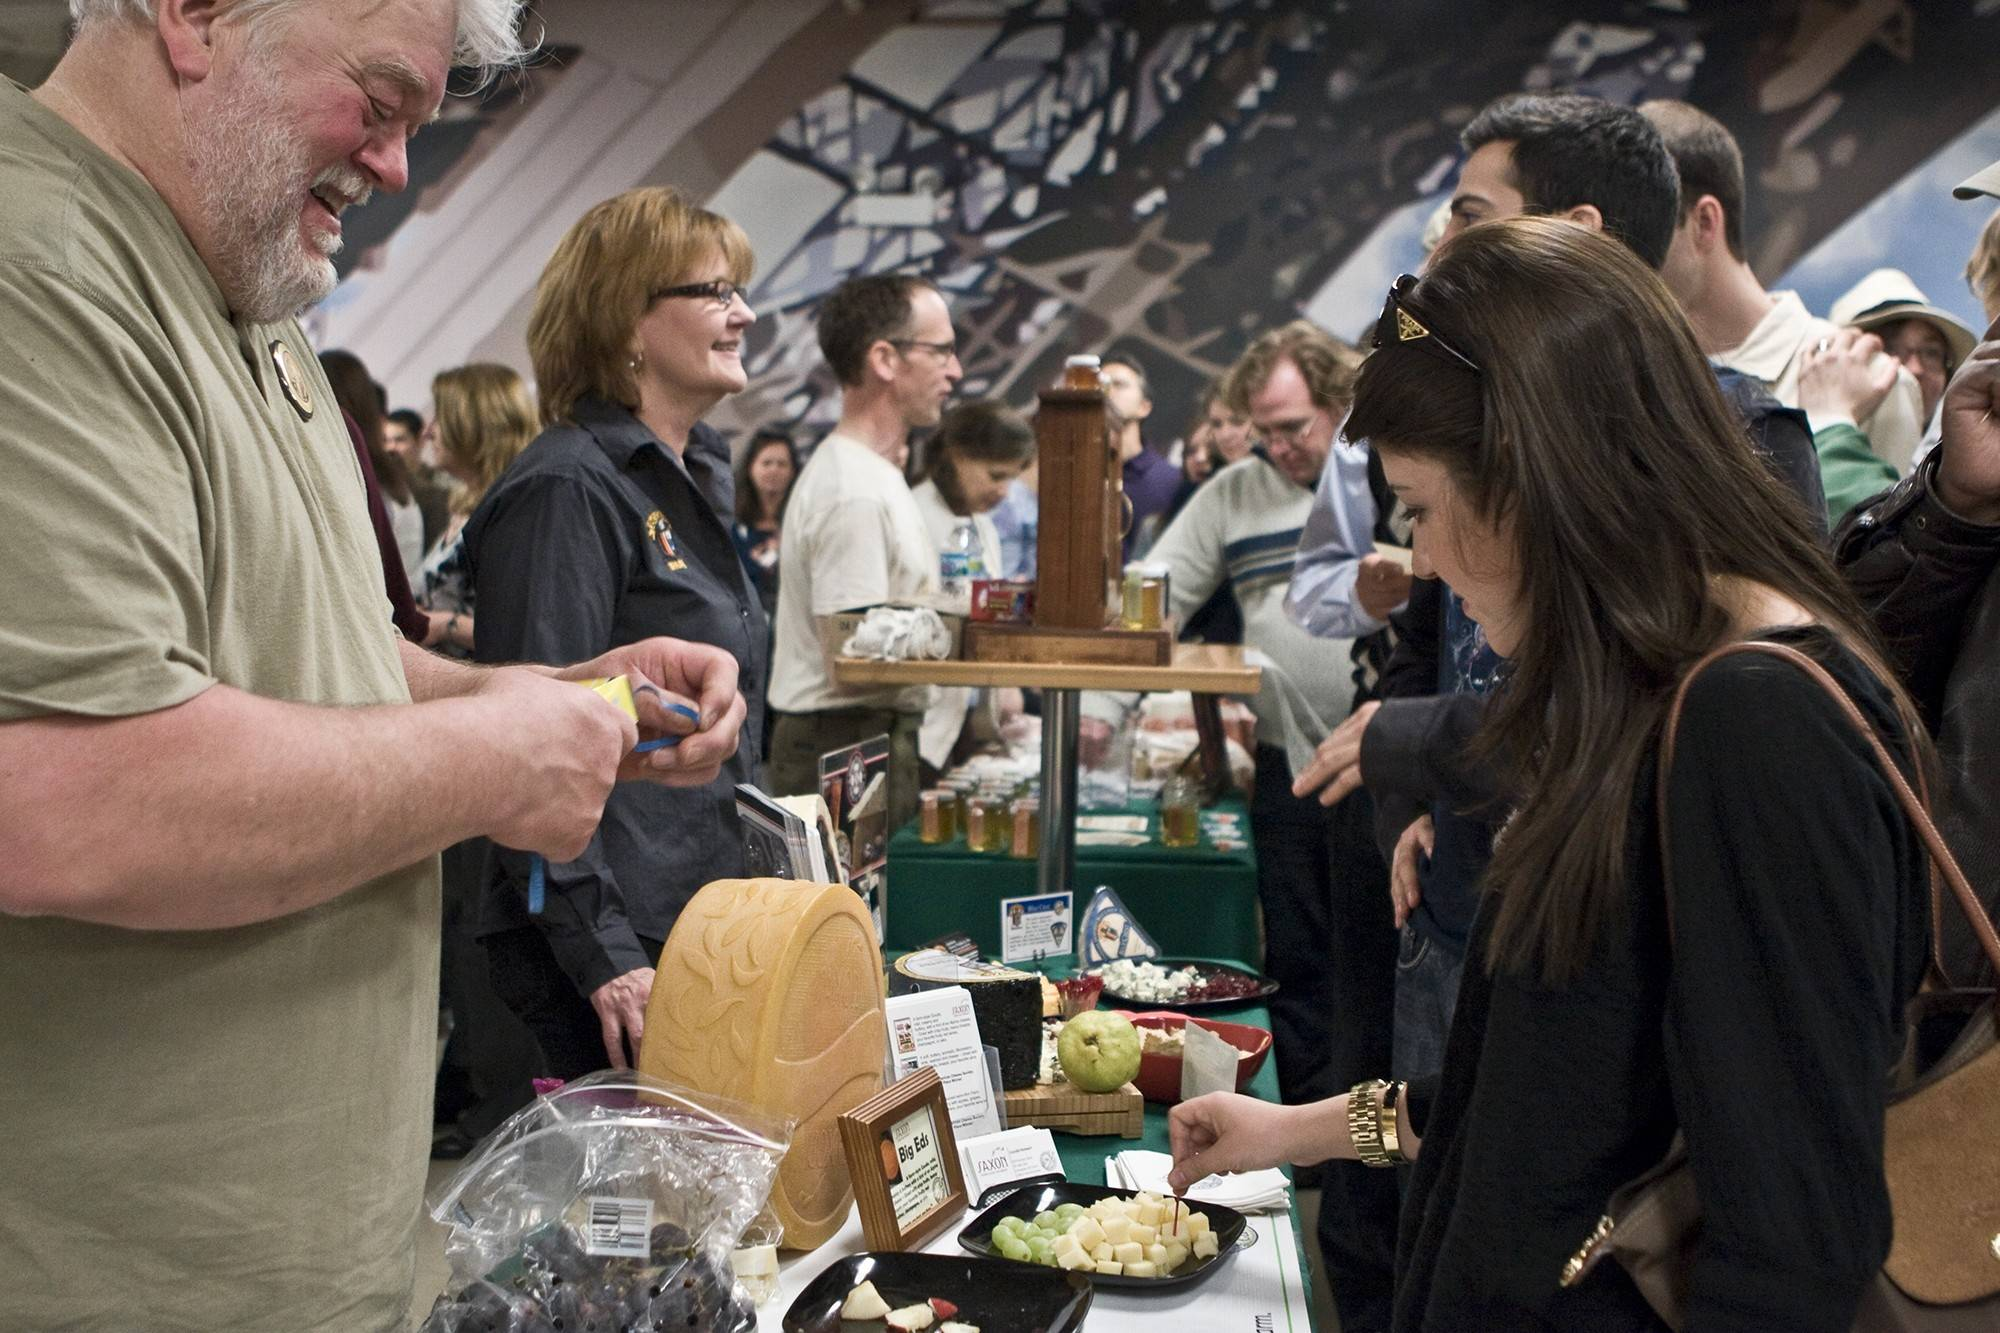 Meet artisan cheese, charcuterie, beer and wine producers at Pastoral's Artisan Producer Festival April 12 in the Chicago French Market.